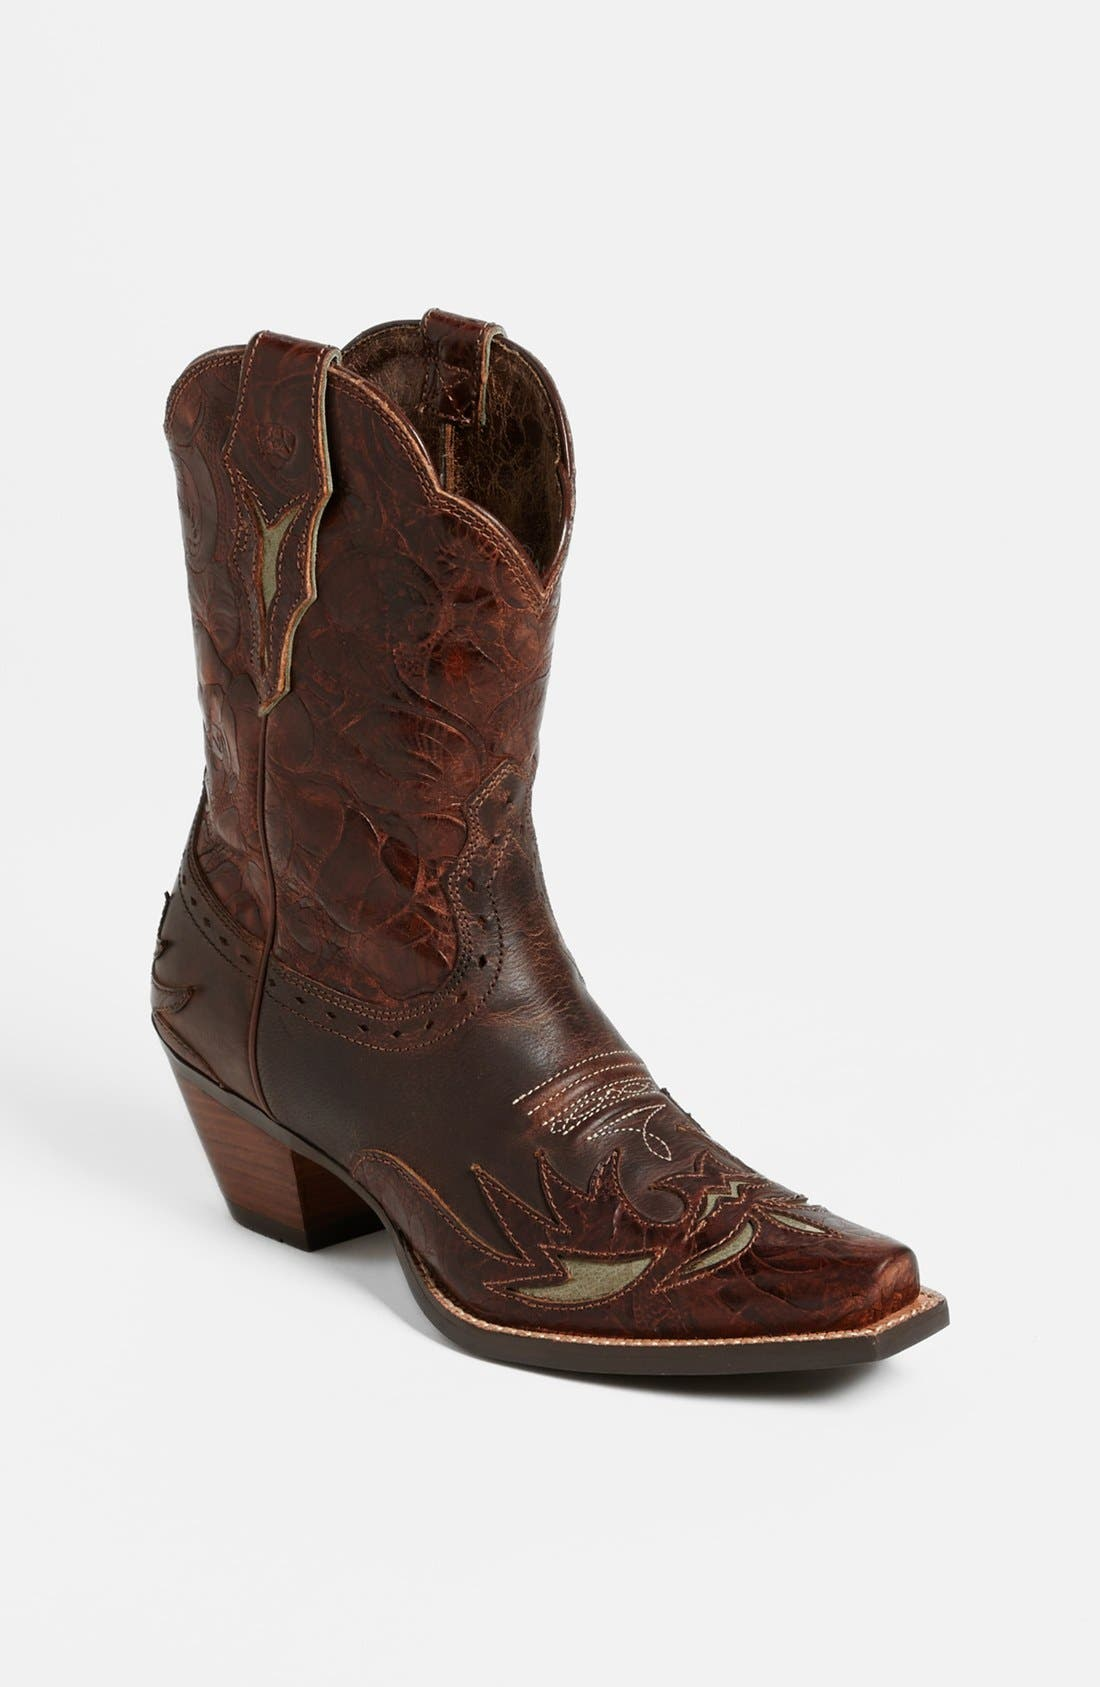 Alternate Image 1 Selected - Ariat 'Dahlia' Boot